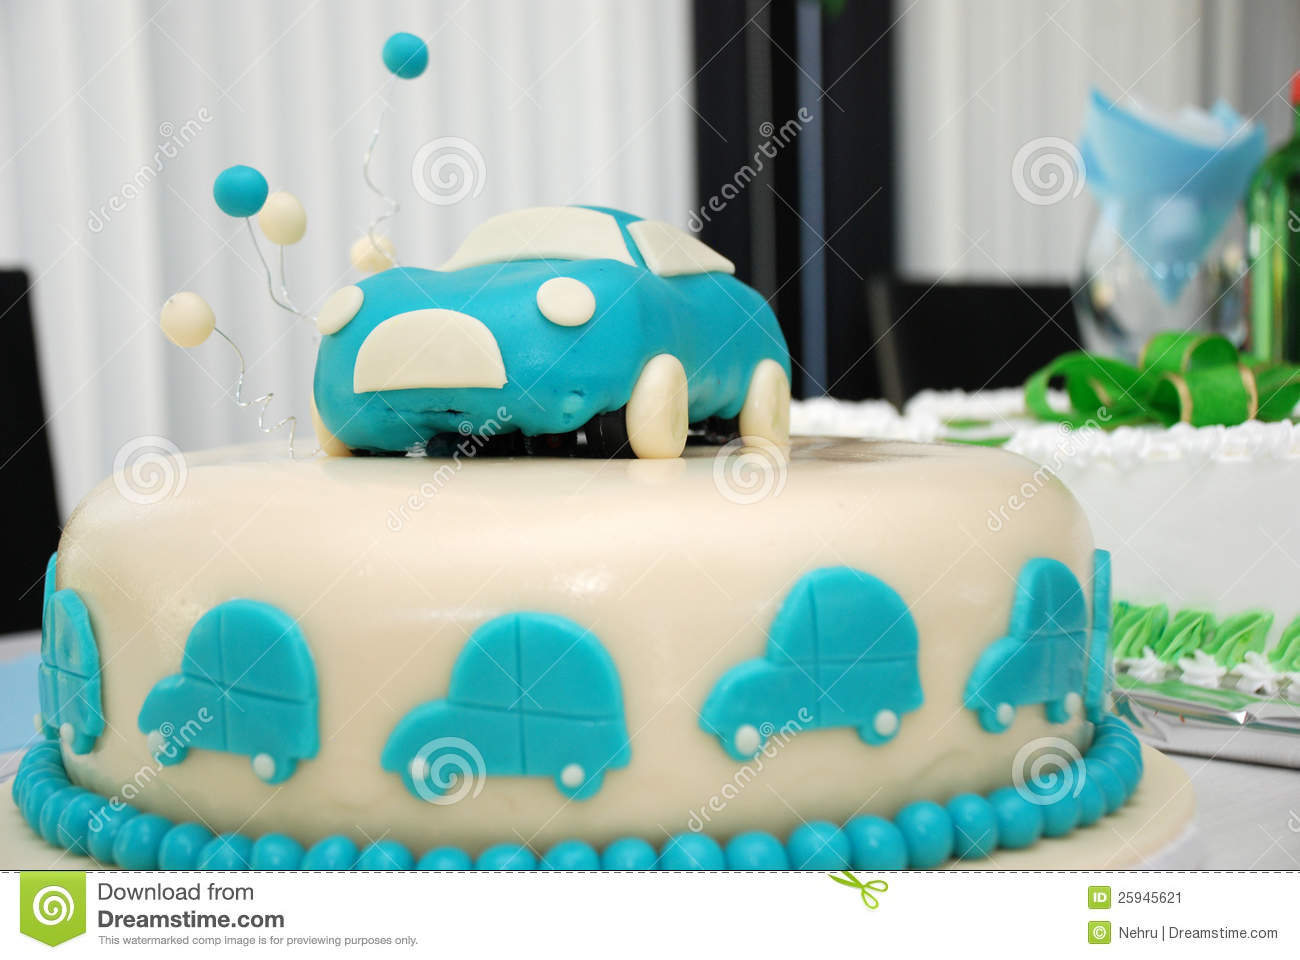 Blue Birthday Cake Boy Image Inspiration of Cake and Birthday